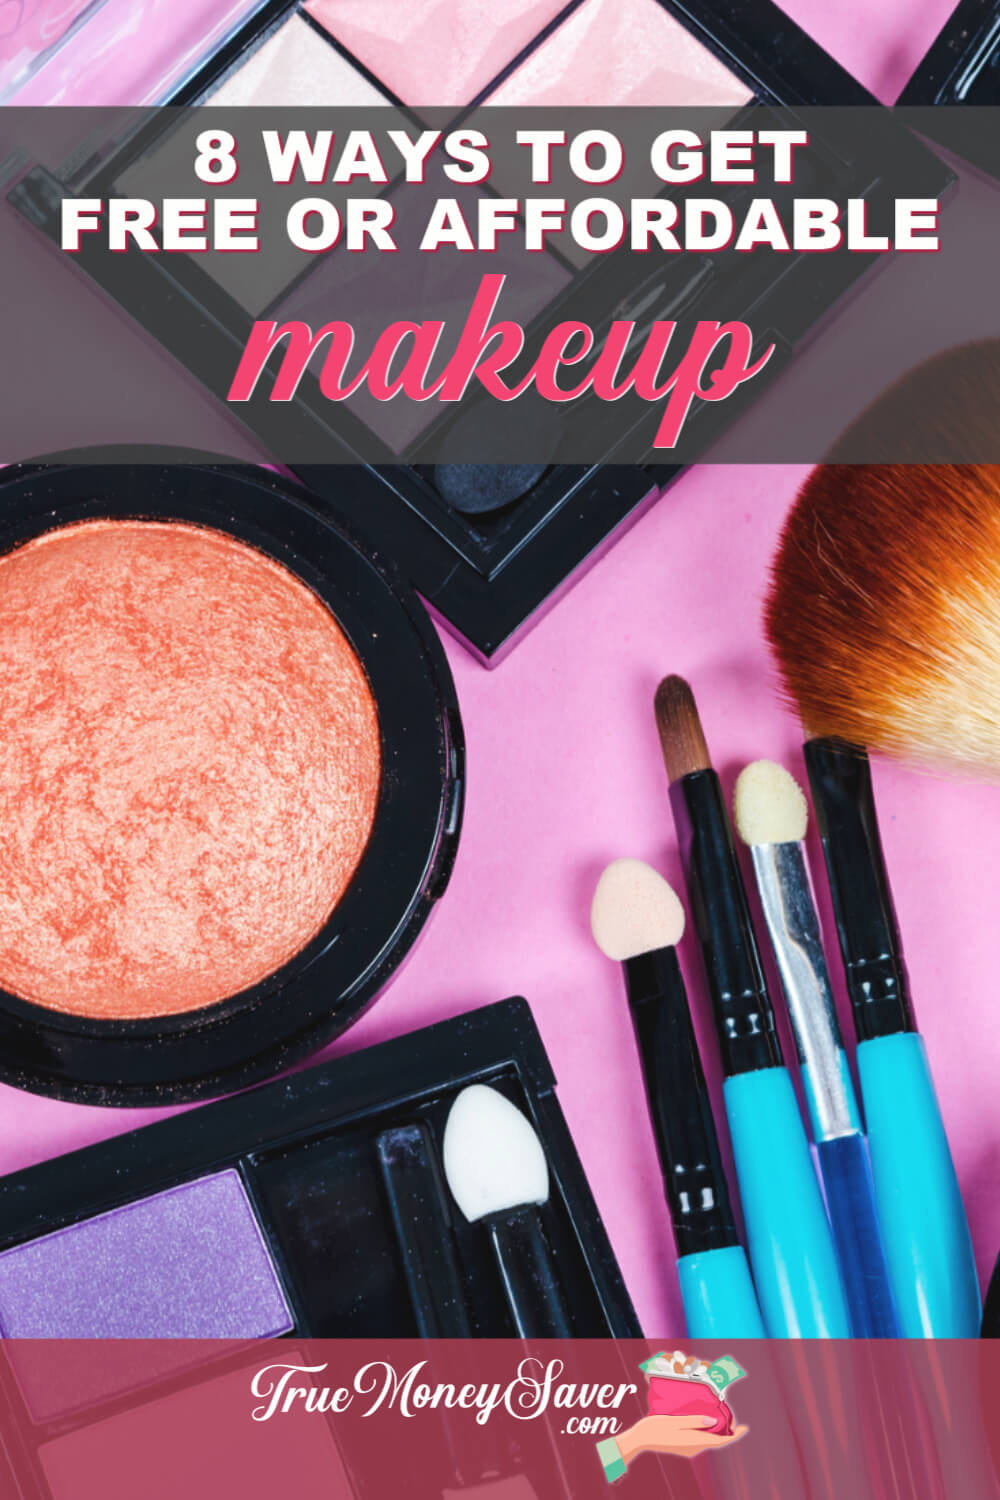 8 Ways To Get FREE Or Affordable Makeup